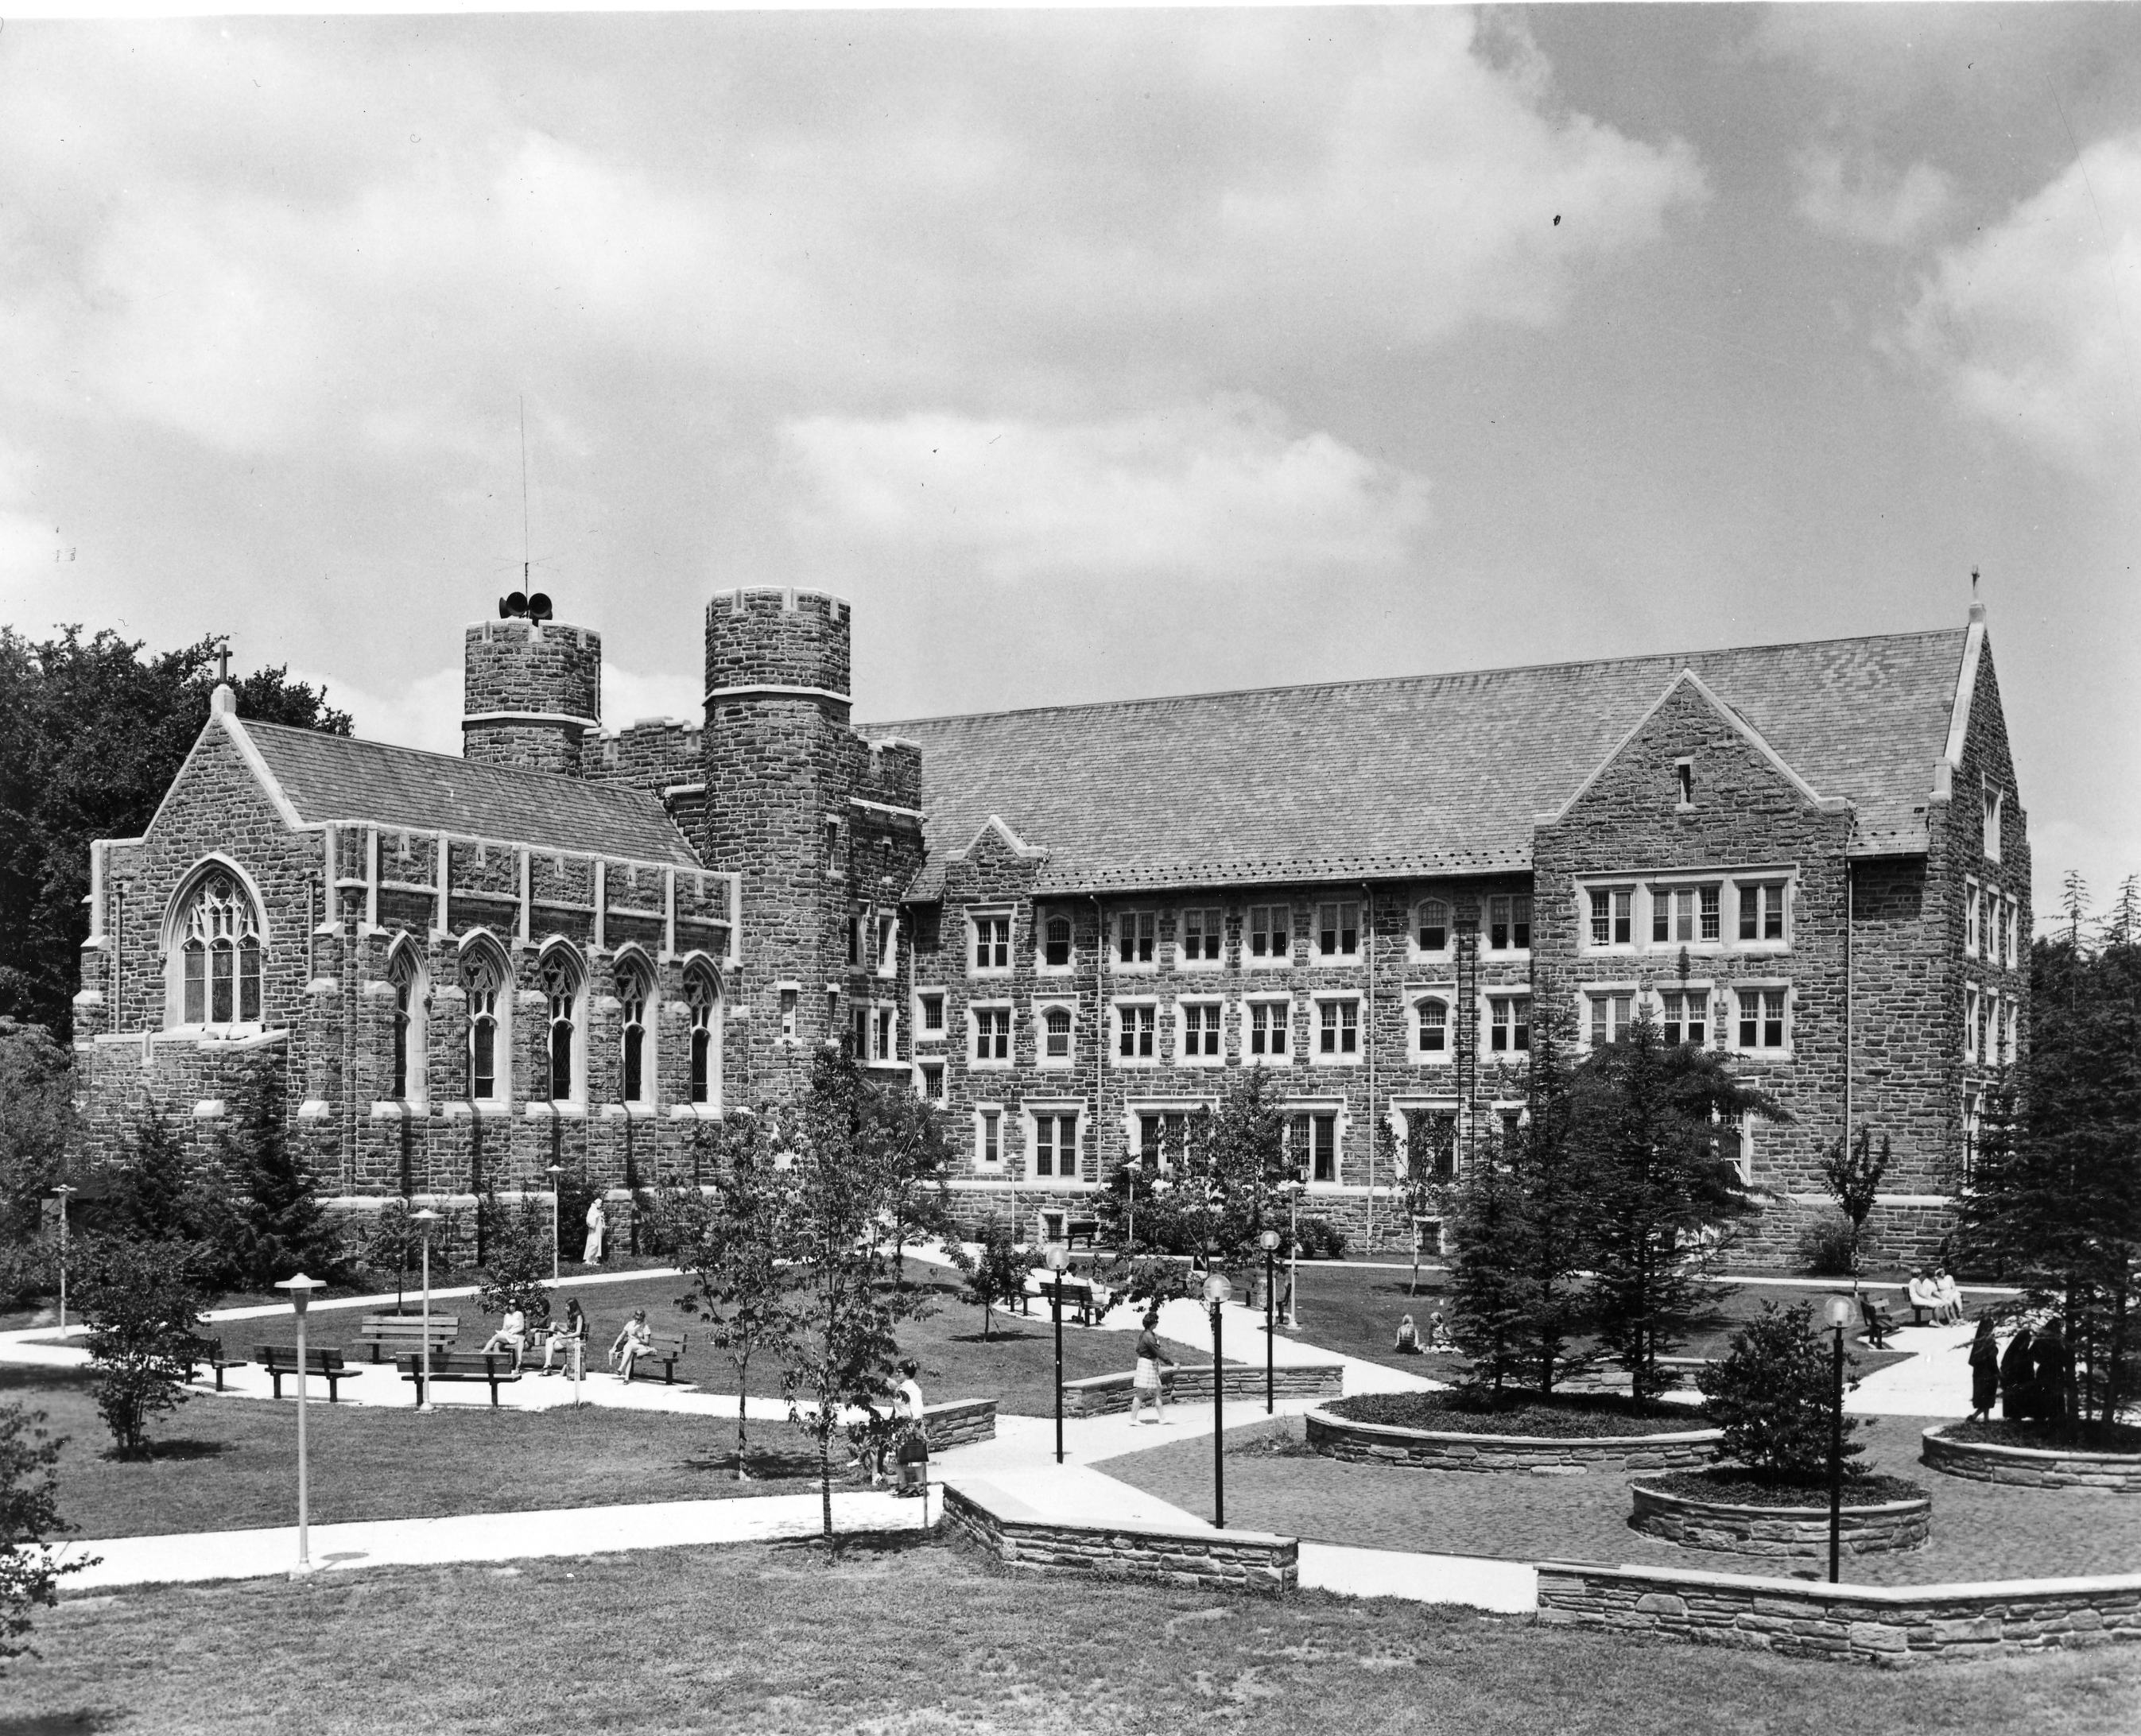 Corr Hall and Courtyard, 1970